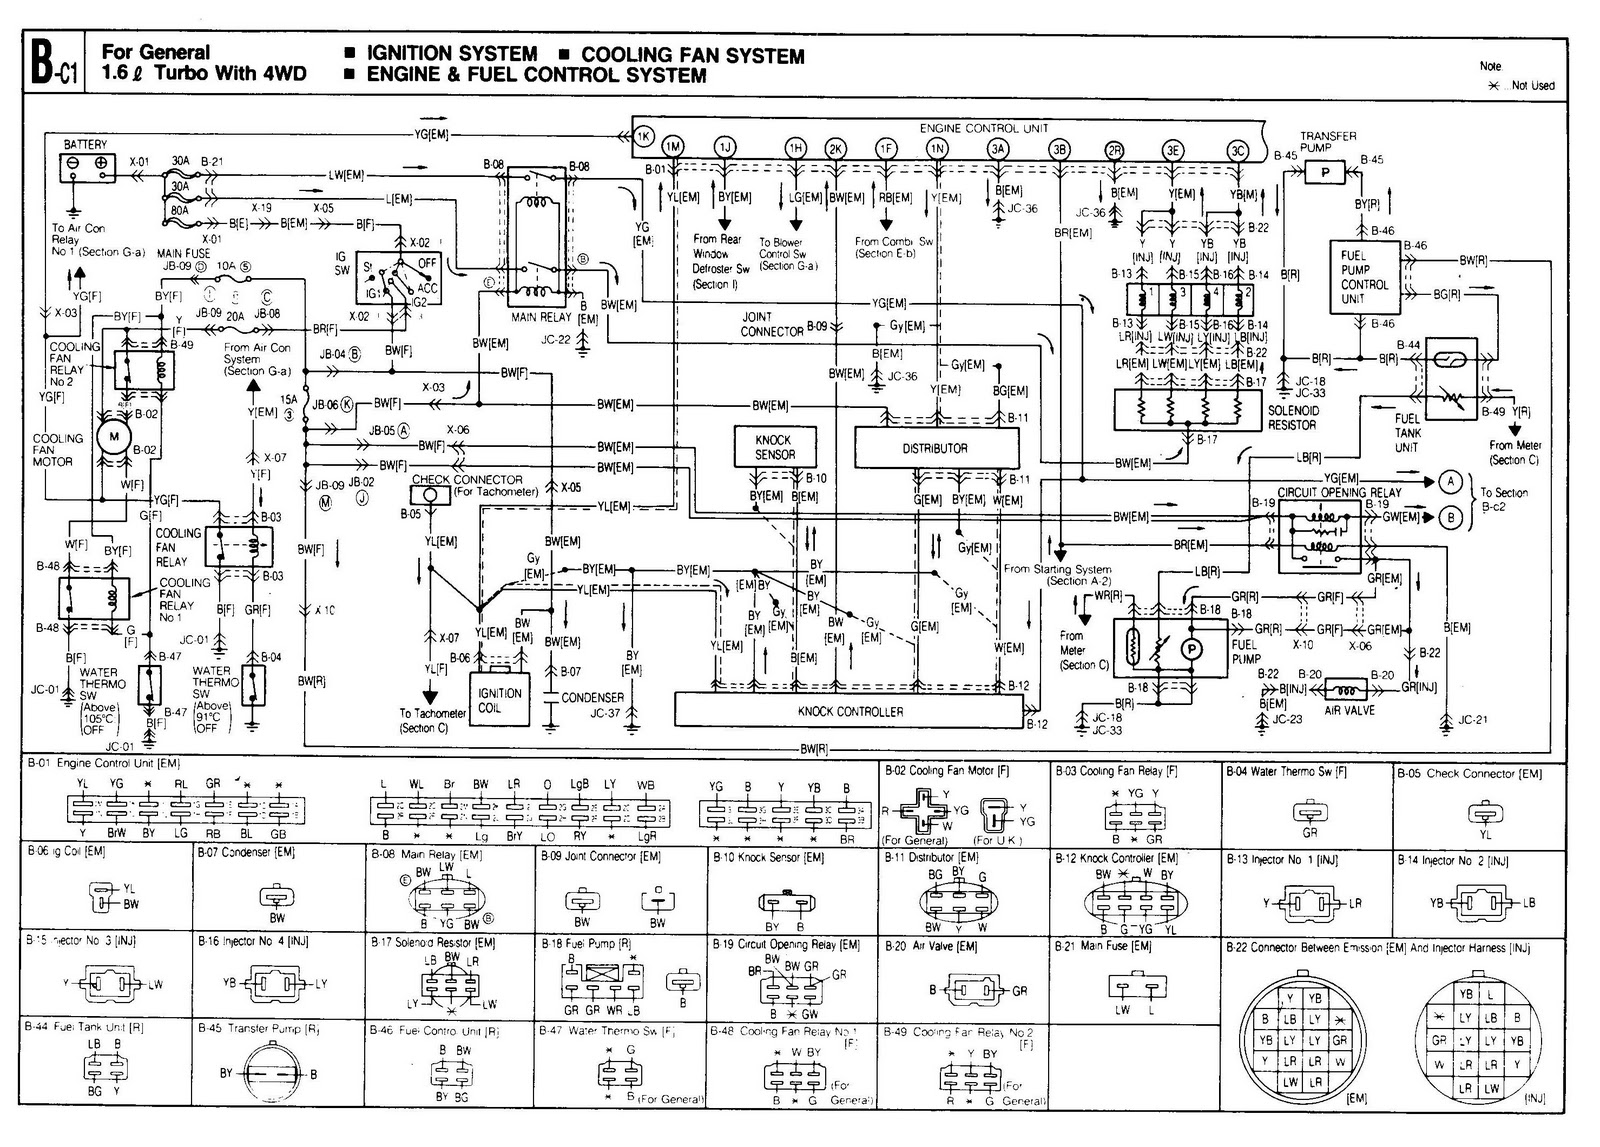 Mazda Understanding Wiring Diagram on Mazda 6 Bose Amp Wiring Diagram